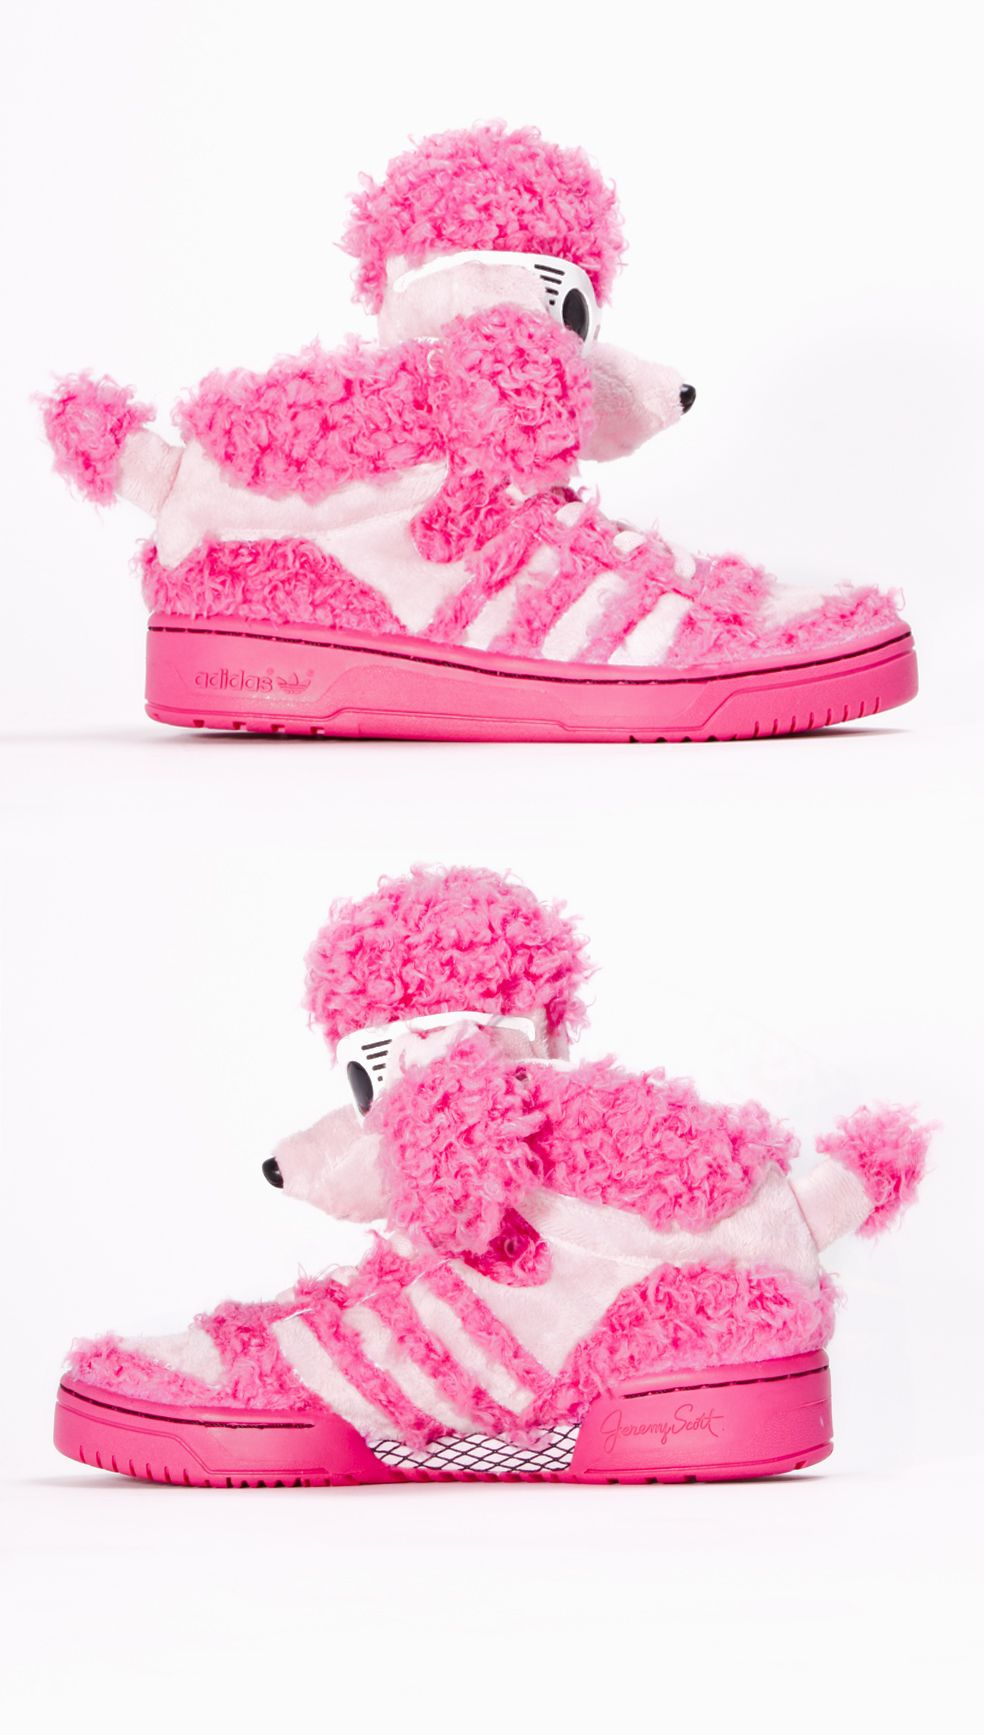 587d57876a14 Adidas Jeremy Scott shoes Js poodle Trainers - Bloom